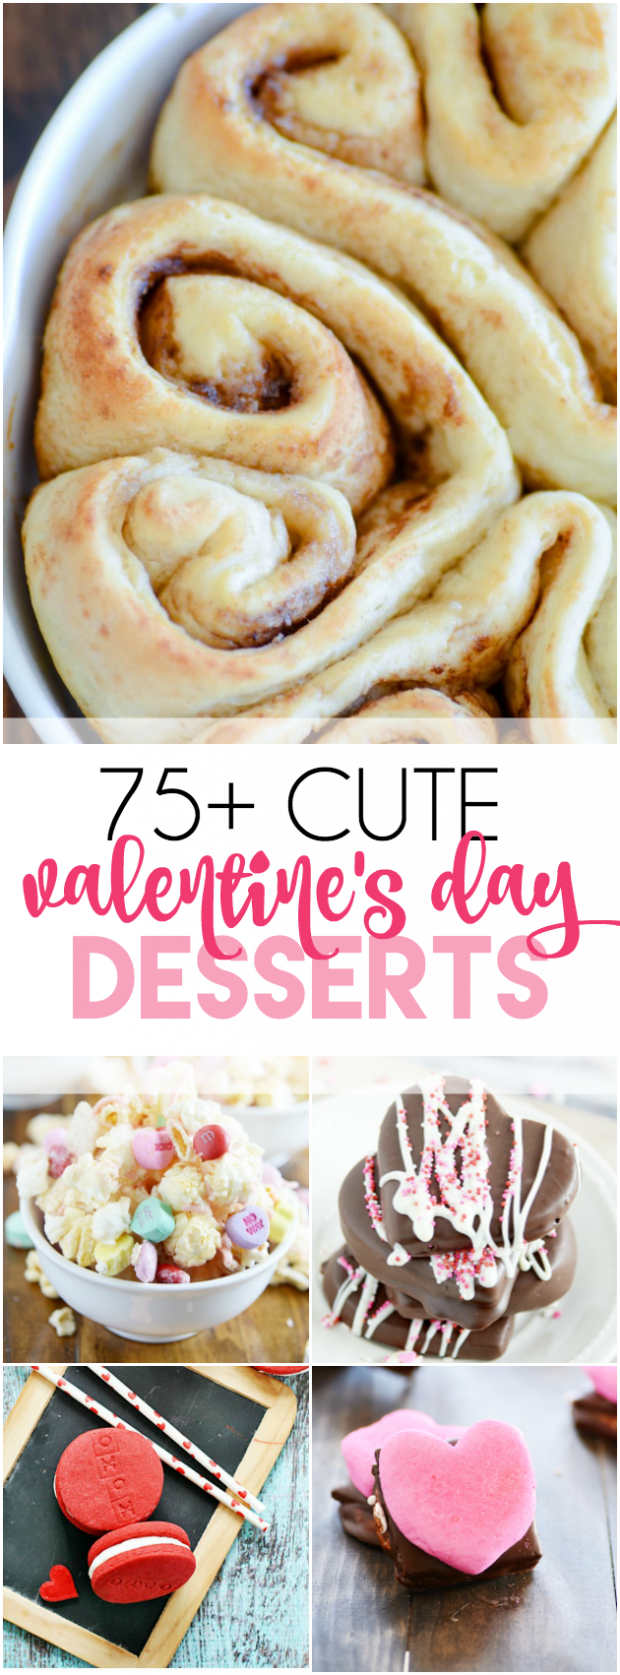 More than 75 cute Valentine's Day Desserts including cookies, heart shaped cinnamon rolls, and homemade red velvet oreos!